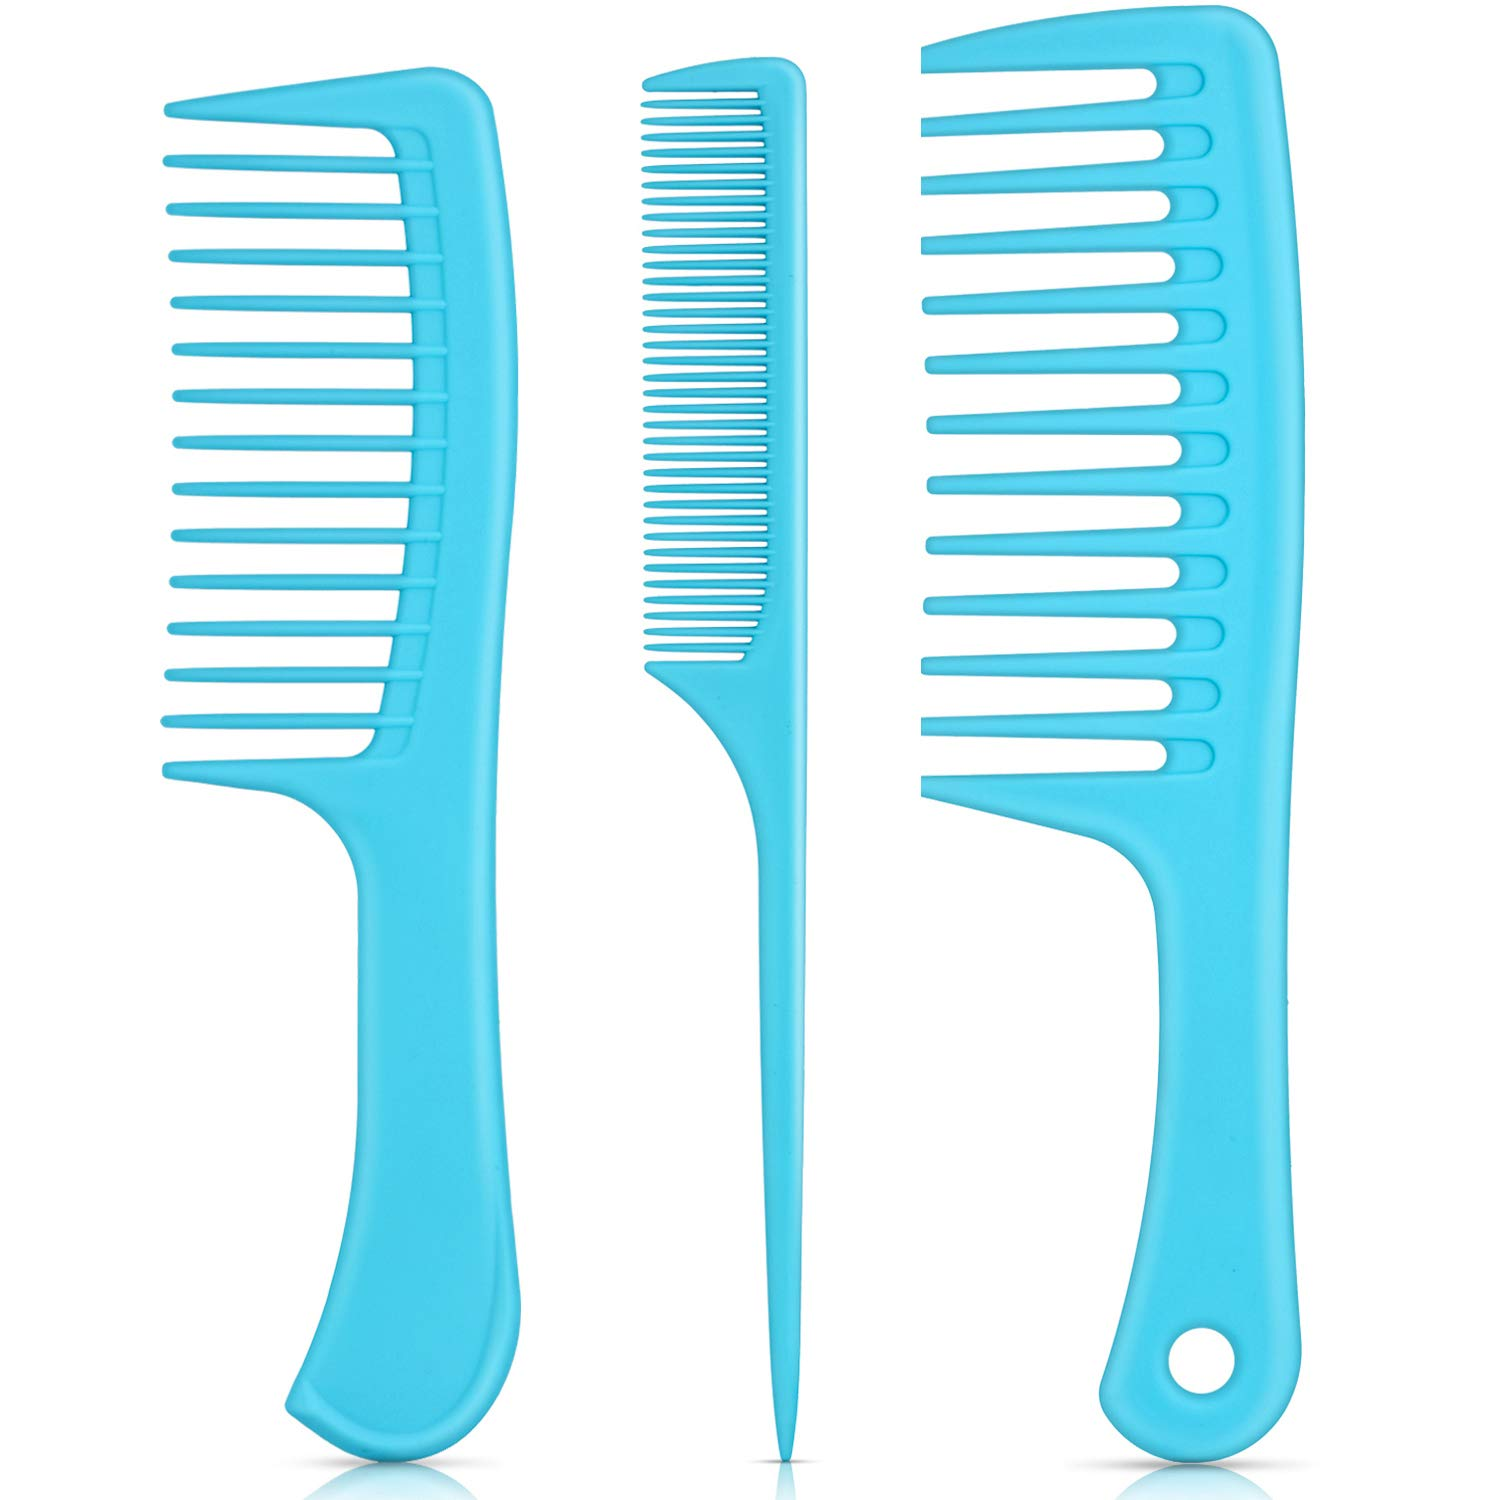 3 Pieces Handle Hair Quantity limited Combs Wide Detangling Comb Tooth Some reservation